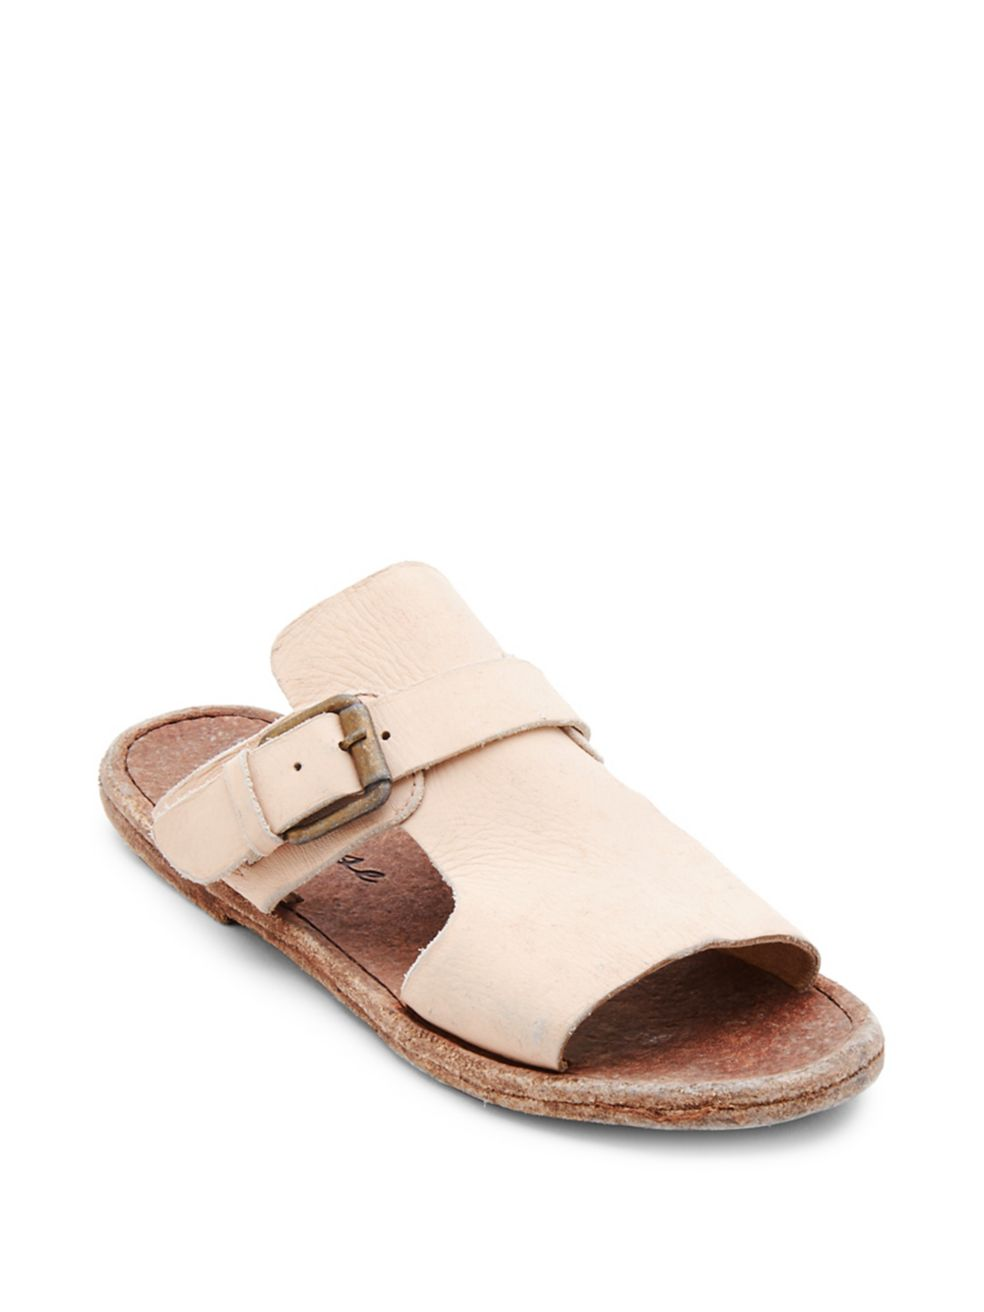 Abbie Sandal by Matiise